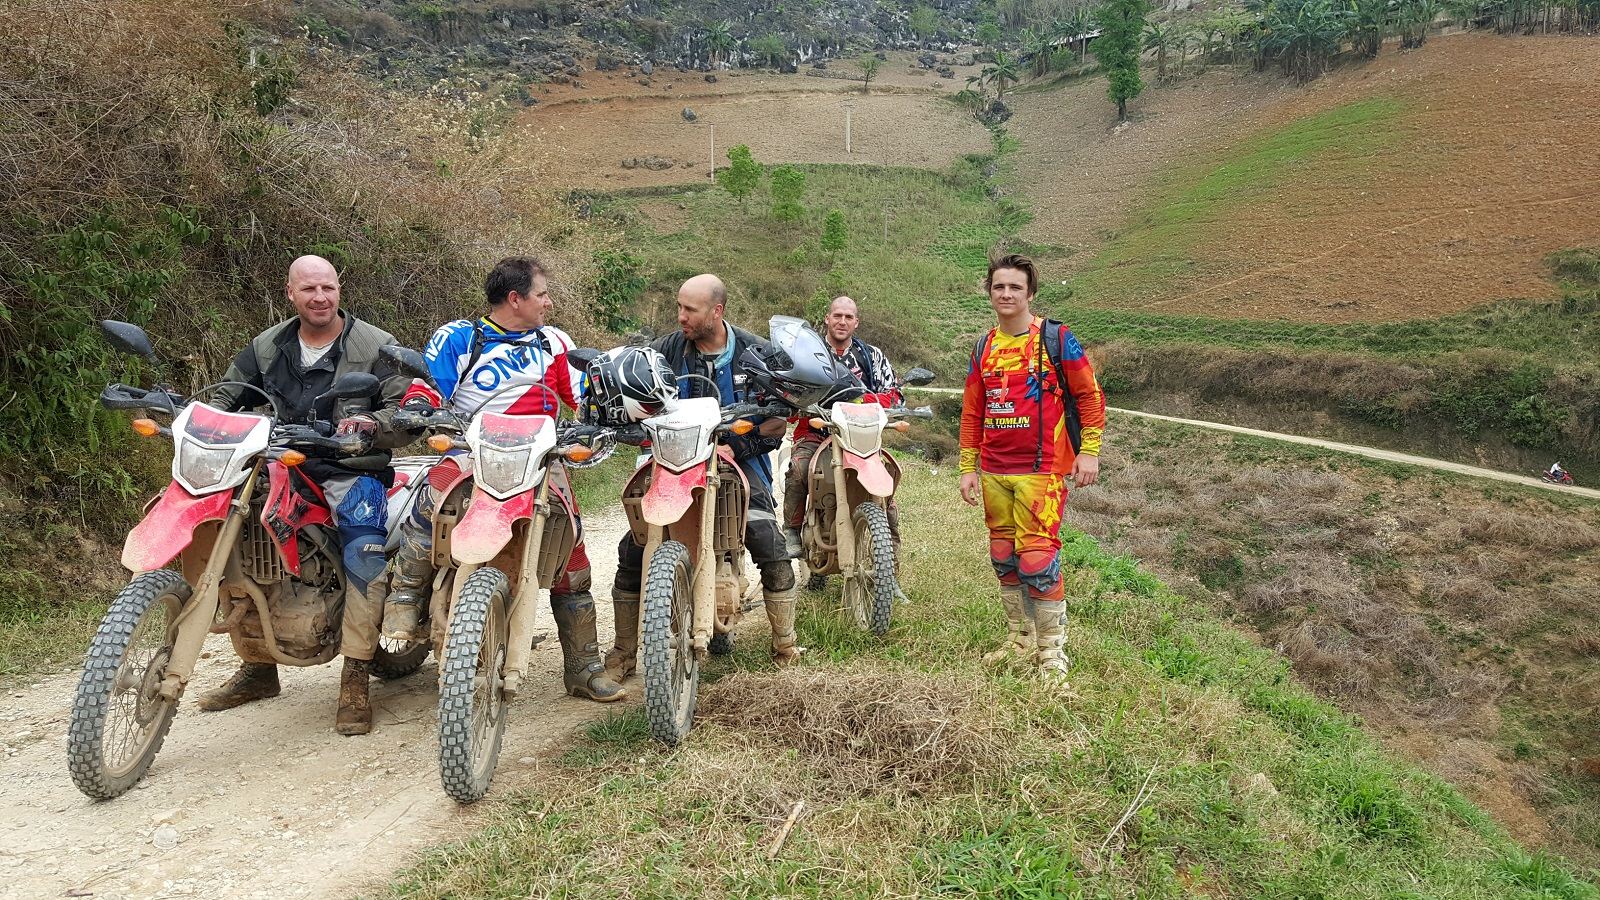 HO CHI MINH TRAIL MOTORCYCLE TOUR 11 DAYS 10 NIGHTS